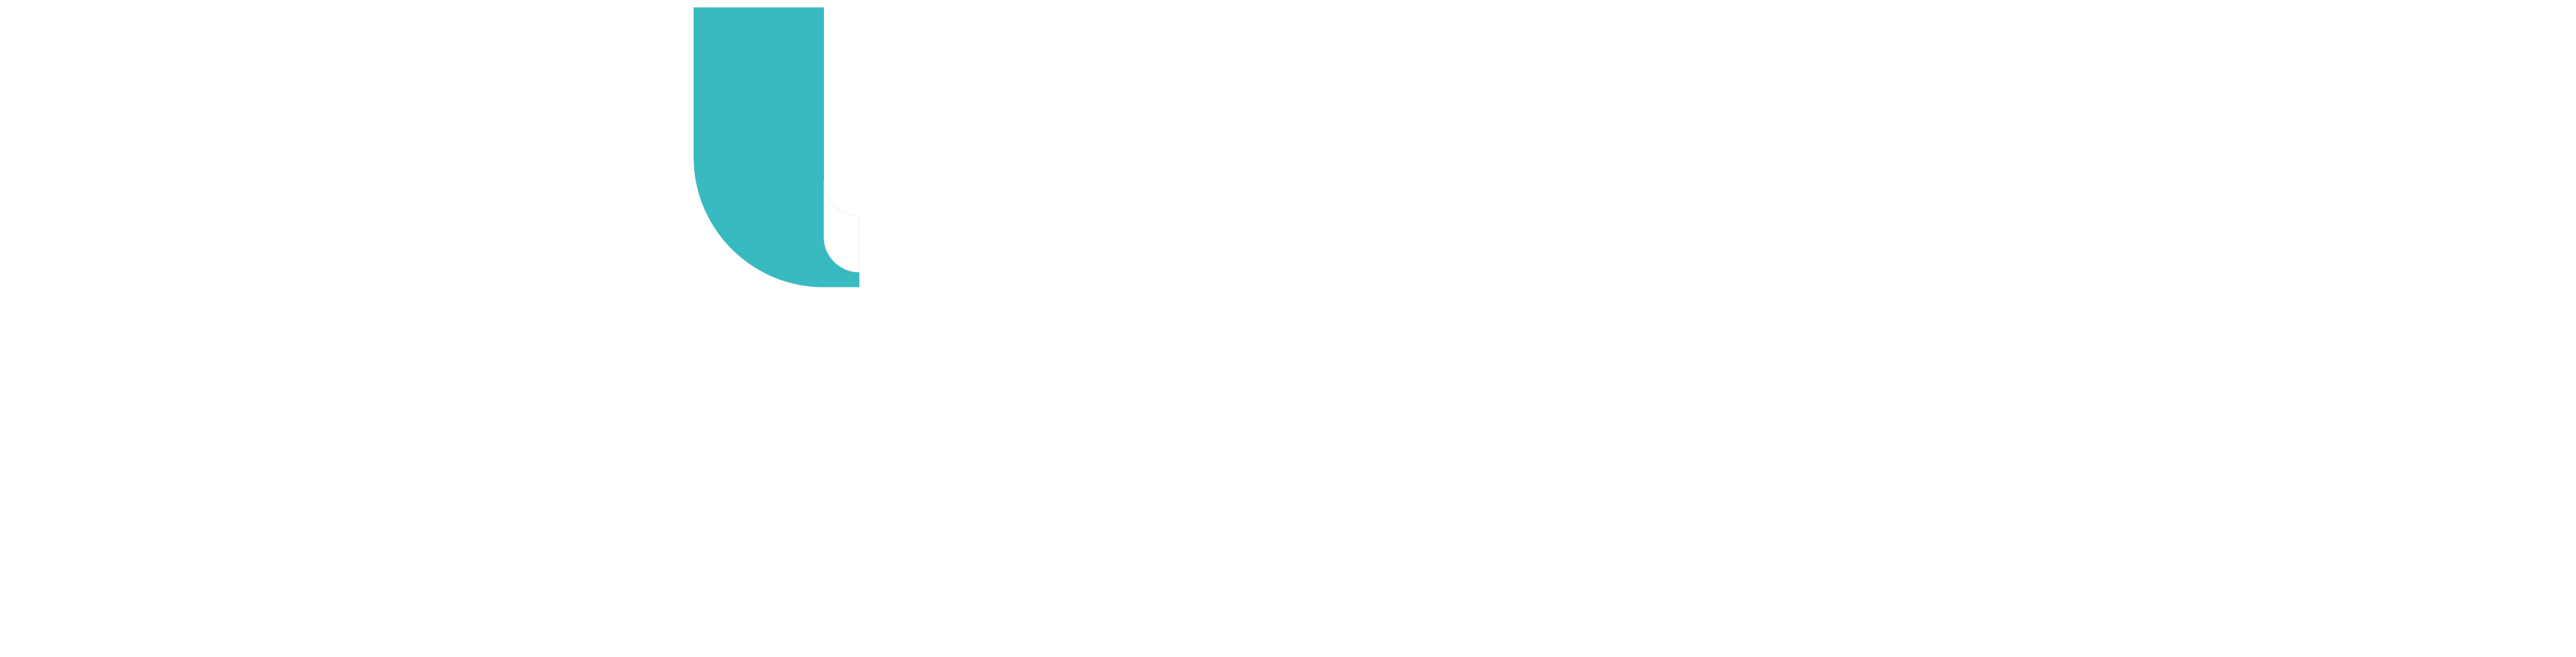 Elyesse consulting sportif